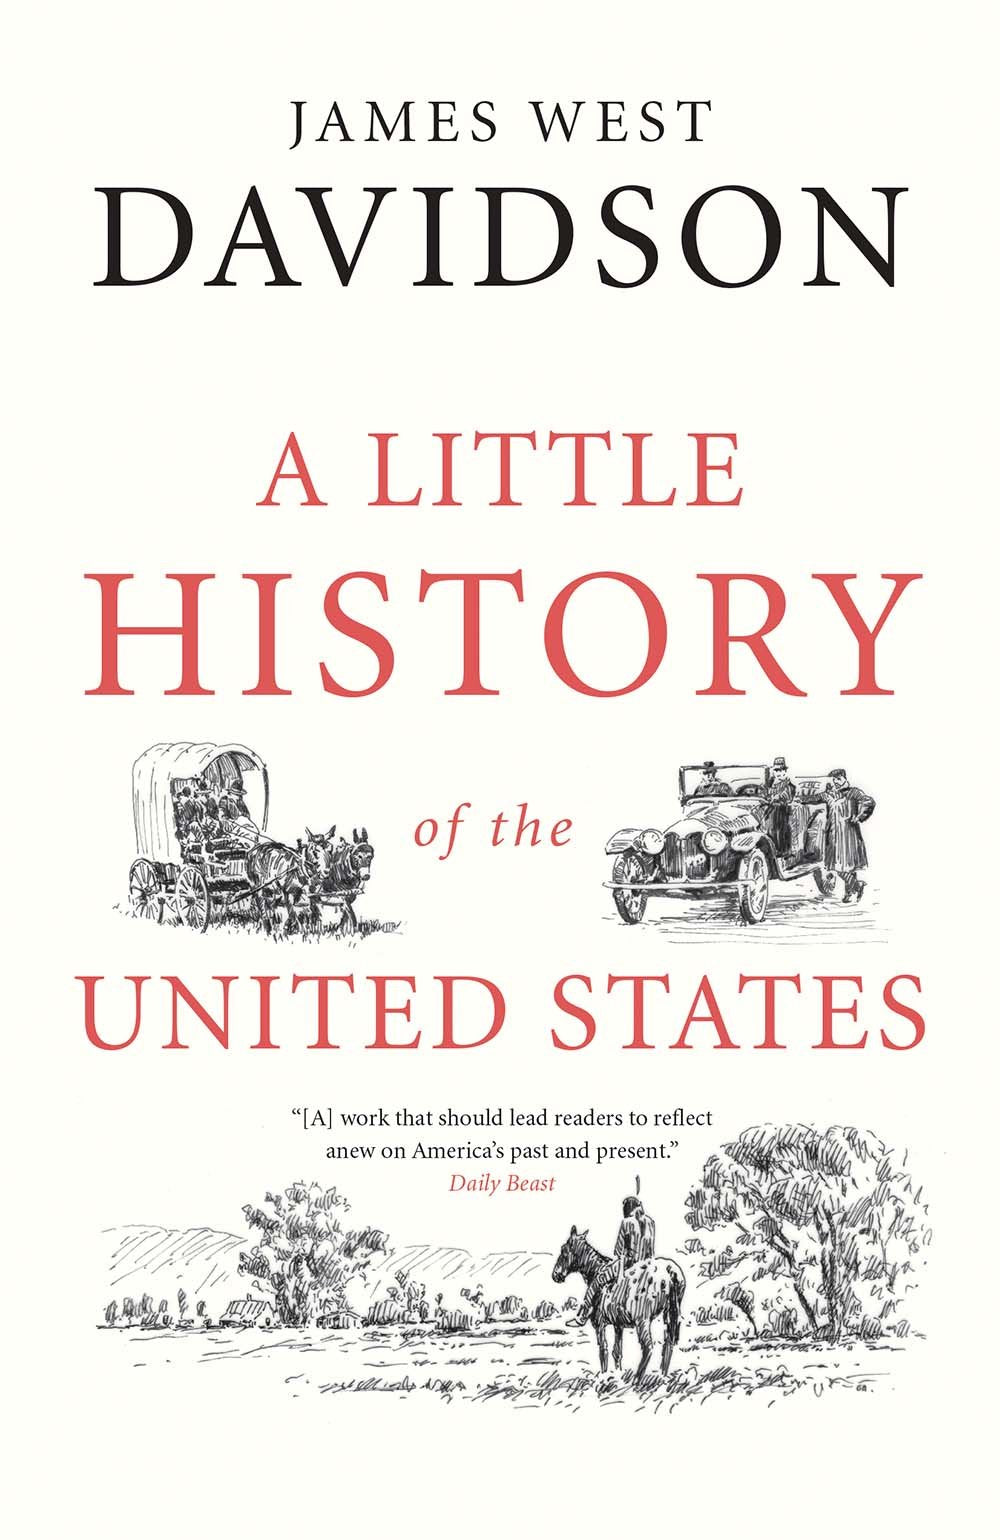 A LITTLE HISTORY OF UNITED STATES - James West Davidson